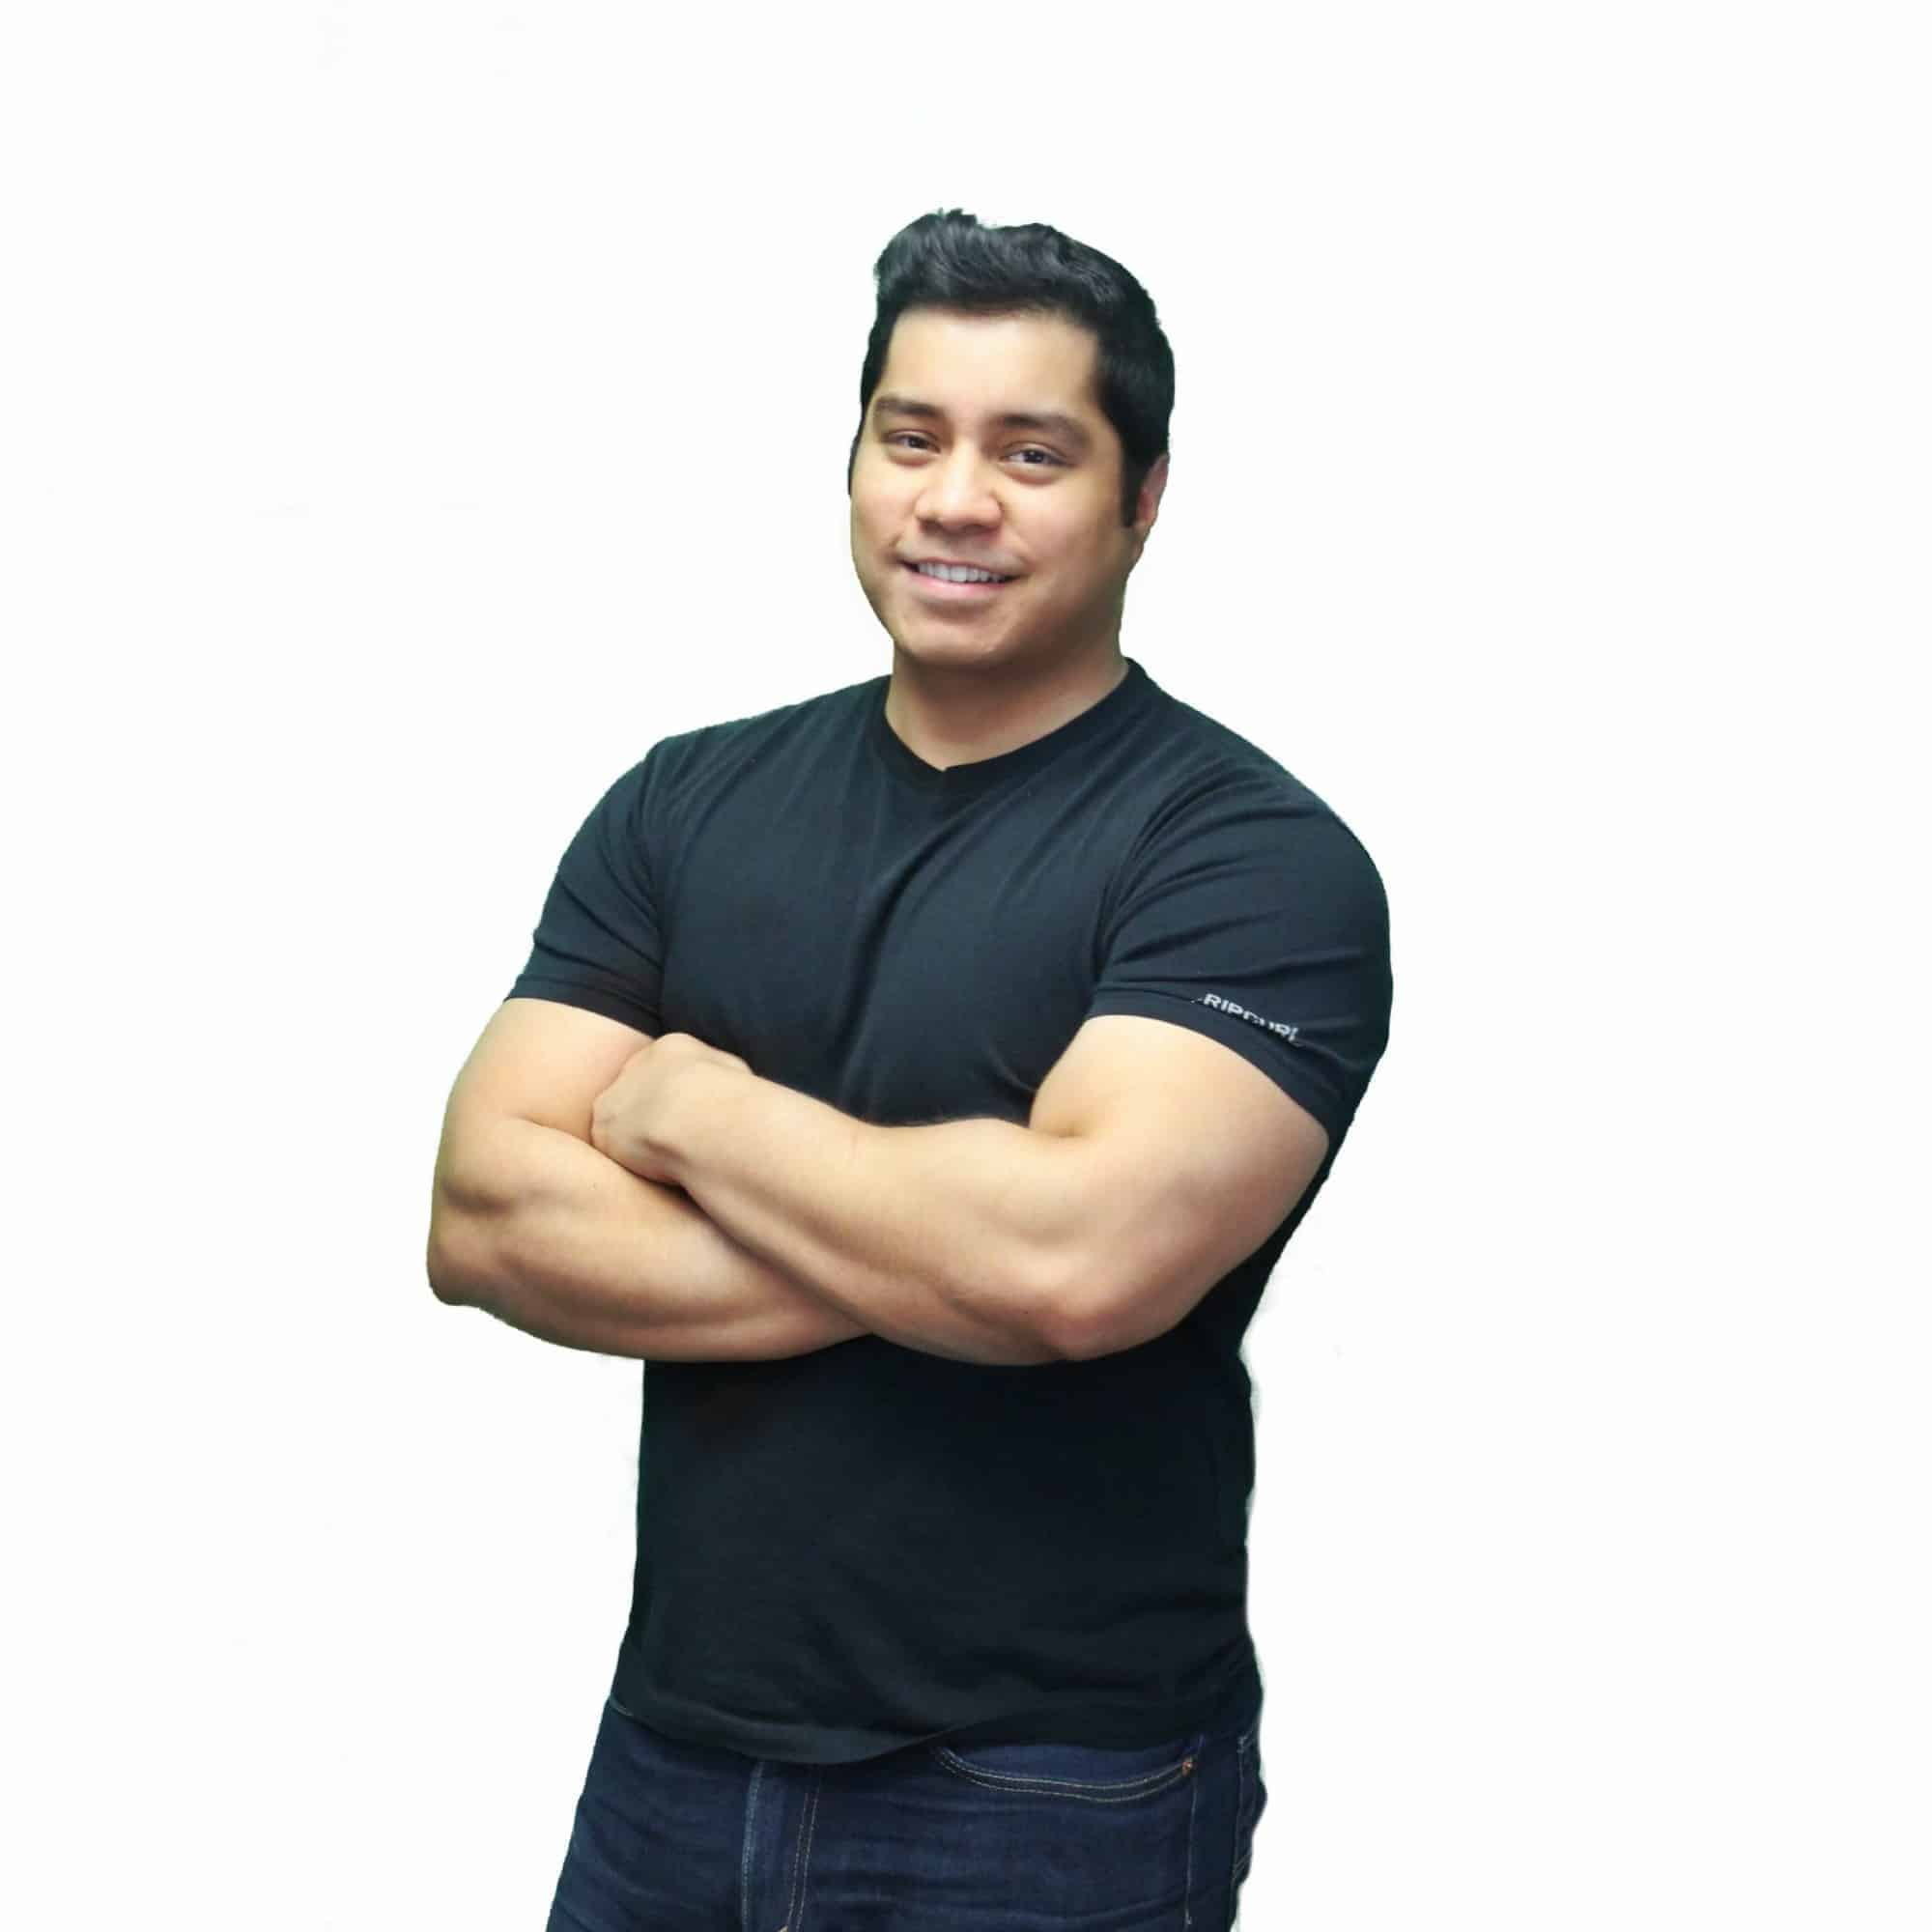 Eric Pena : Nationally Certified Personal Trainer NCCPT CPT